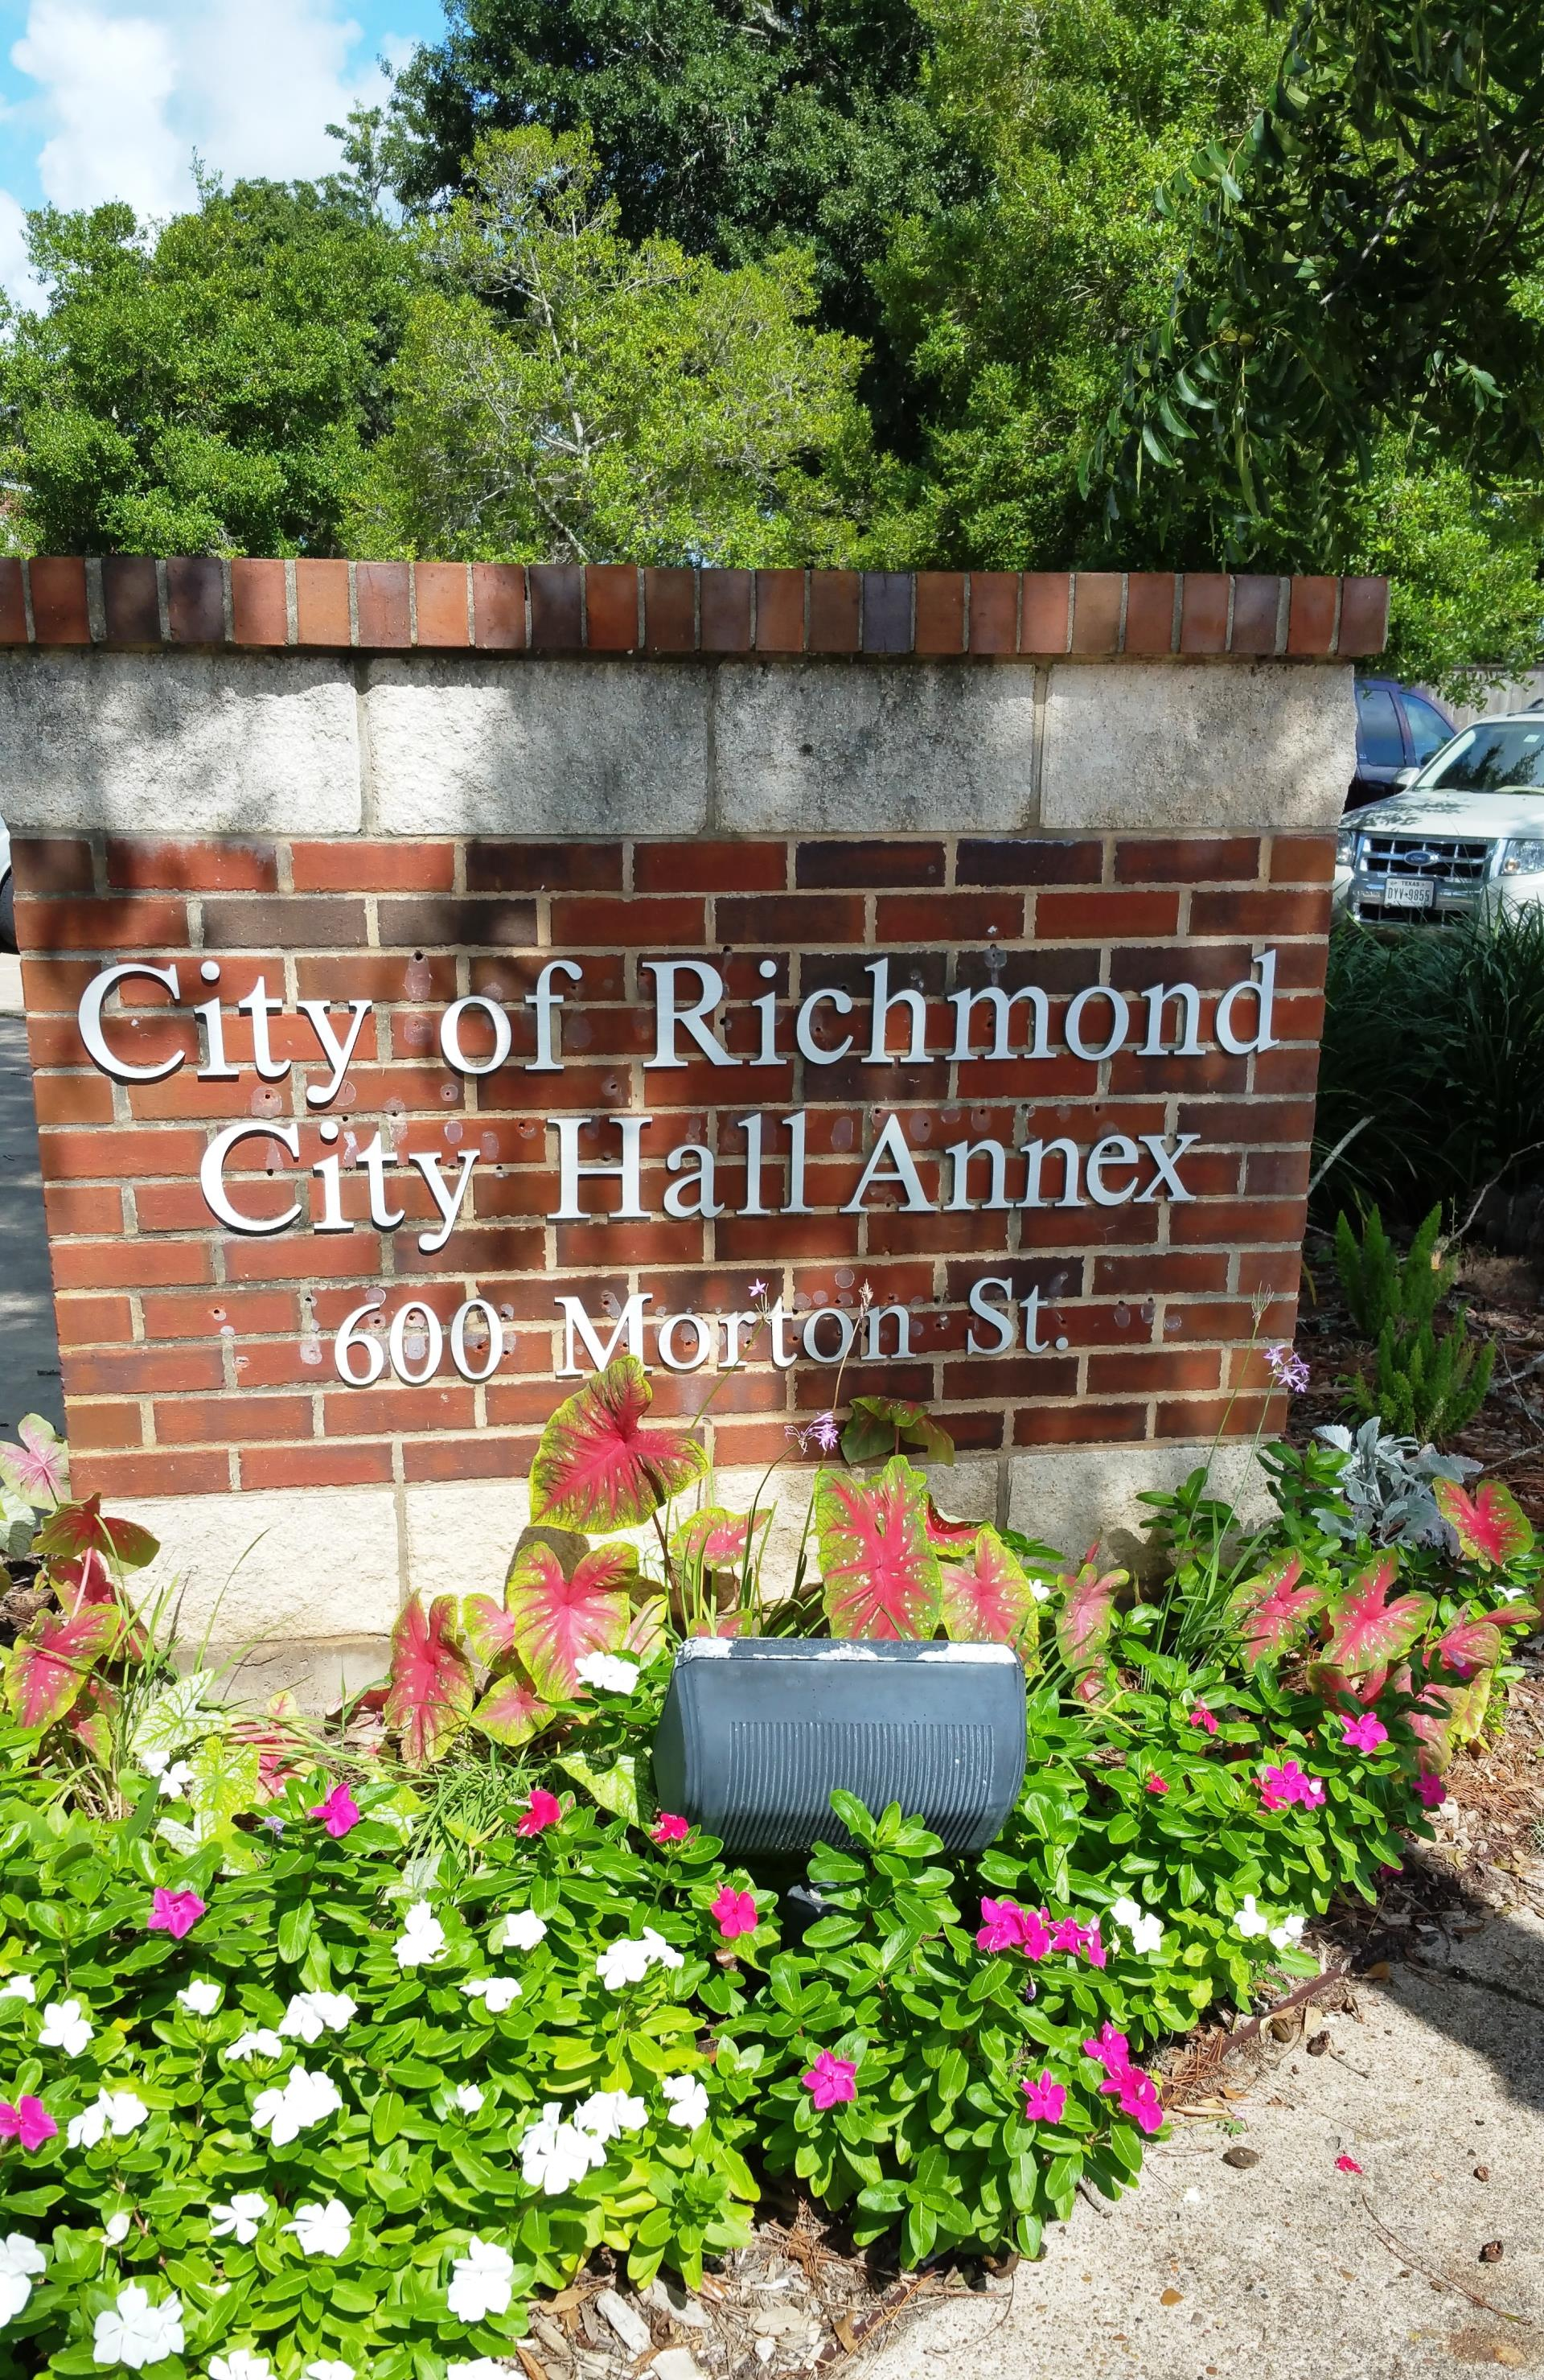 City Hall Annex sign